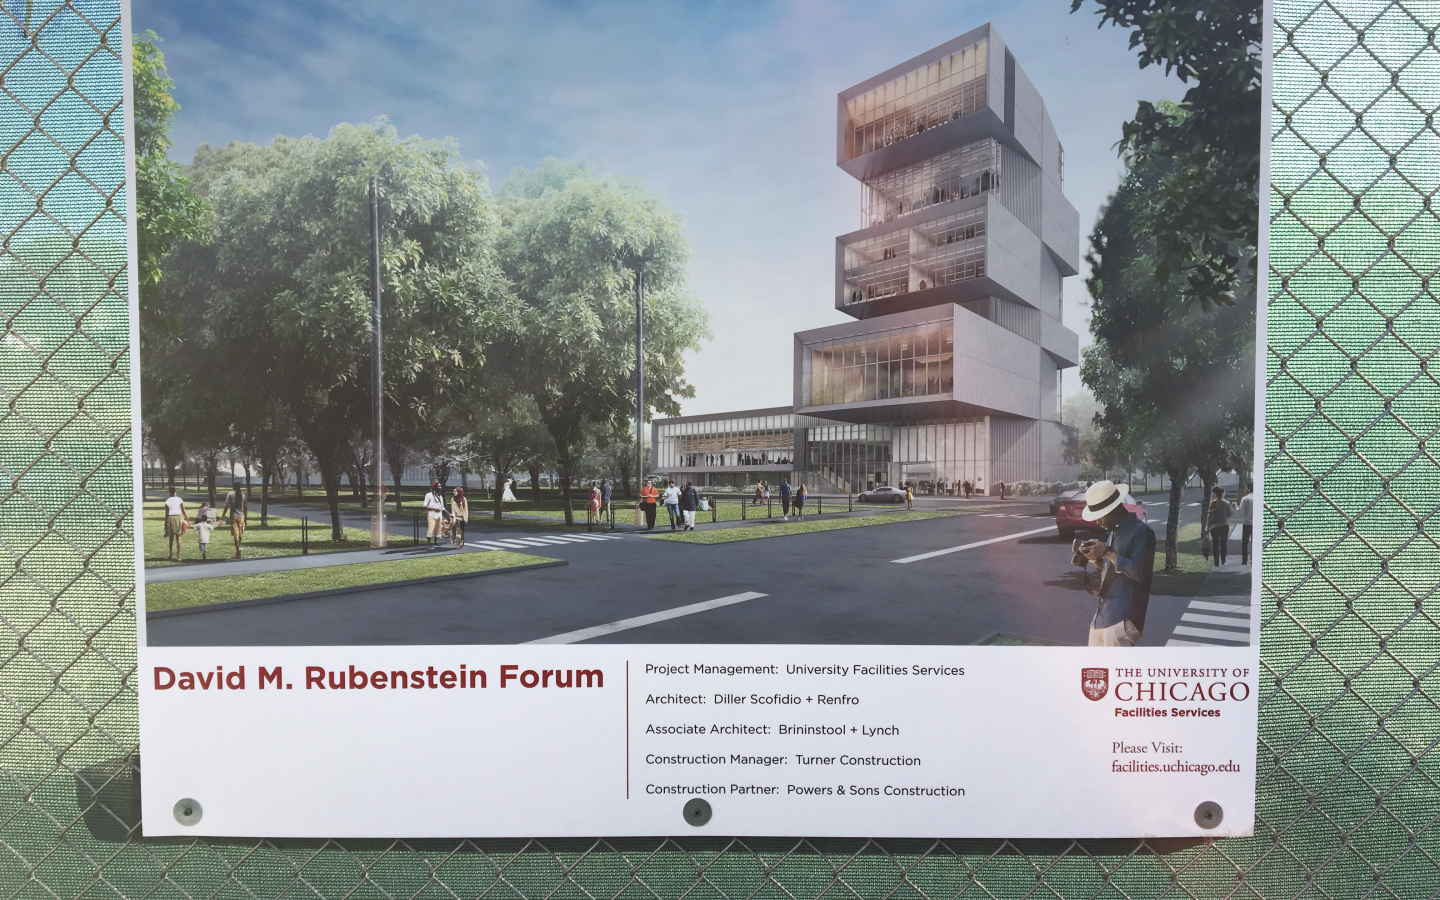 David M. Rubenstein Forum Construction Begins